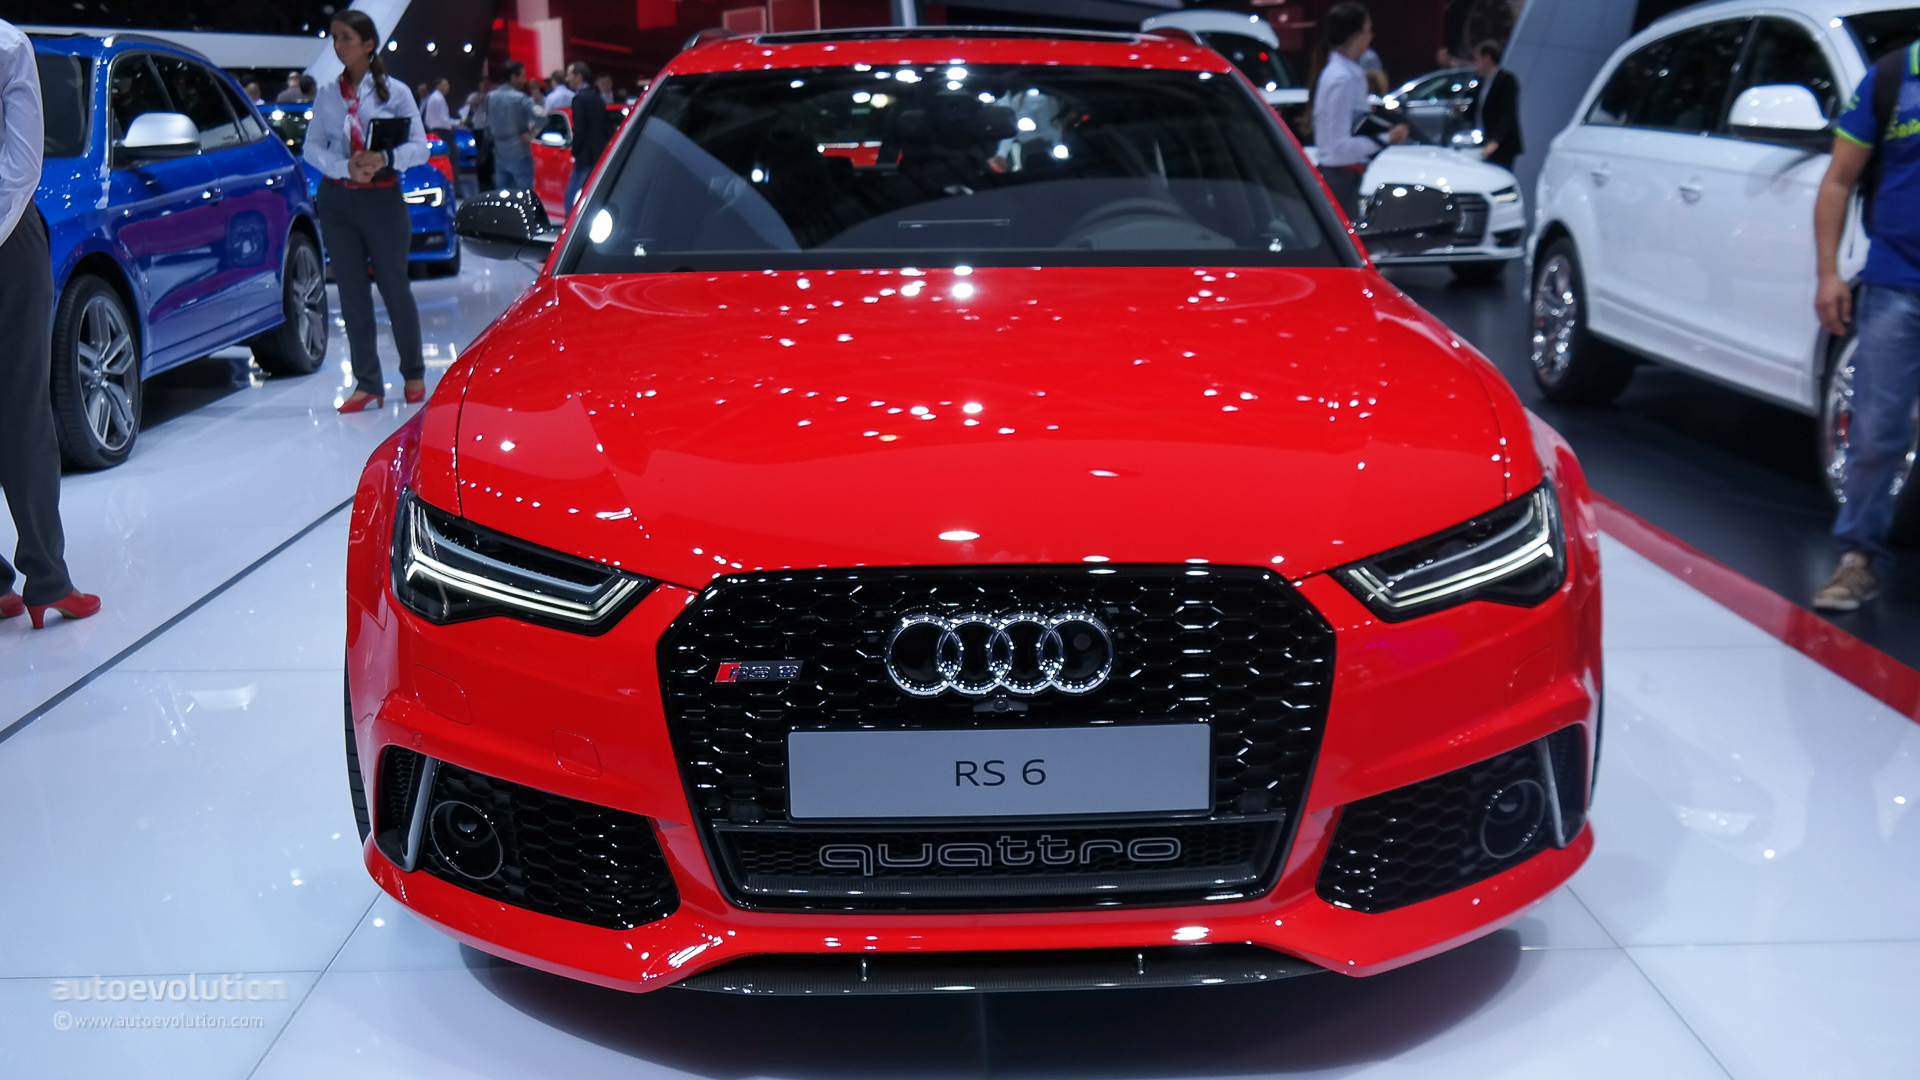 2015 Audi Rs6 Is A Refreshed Super Wagon In Paris Live Photos Autoevolution